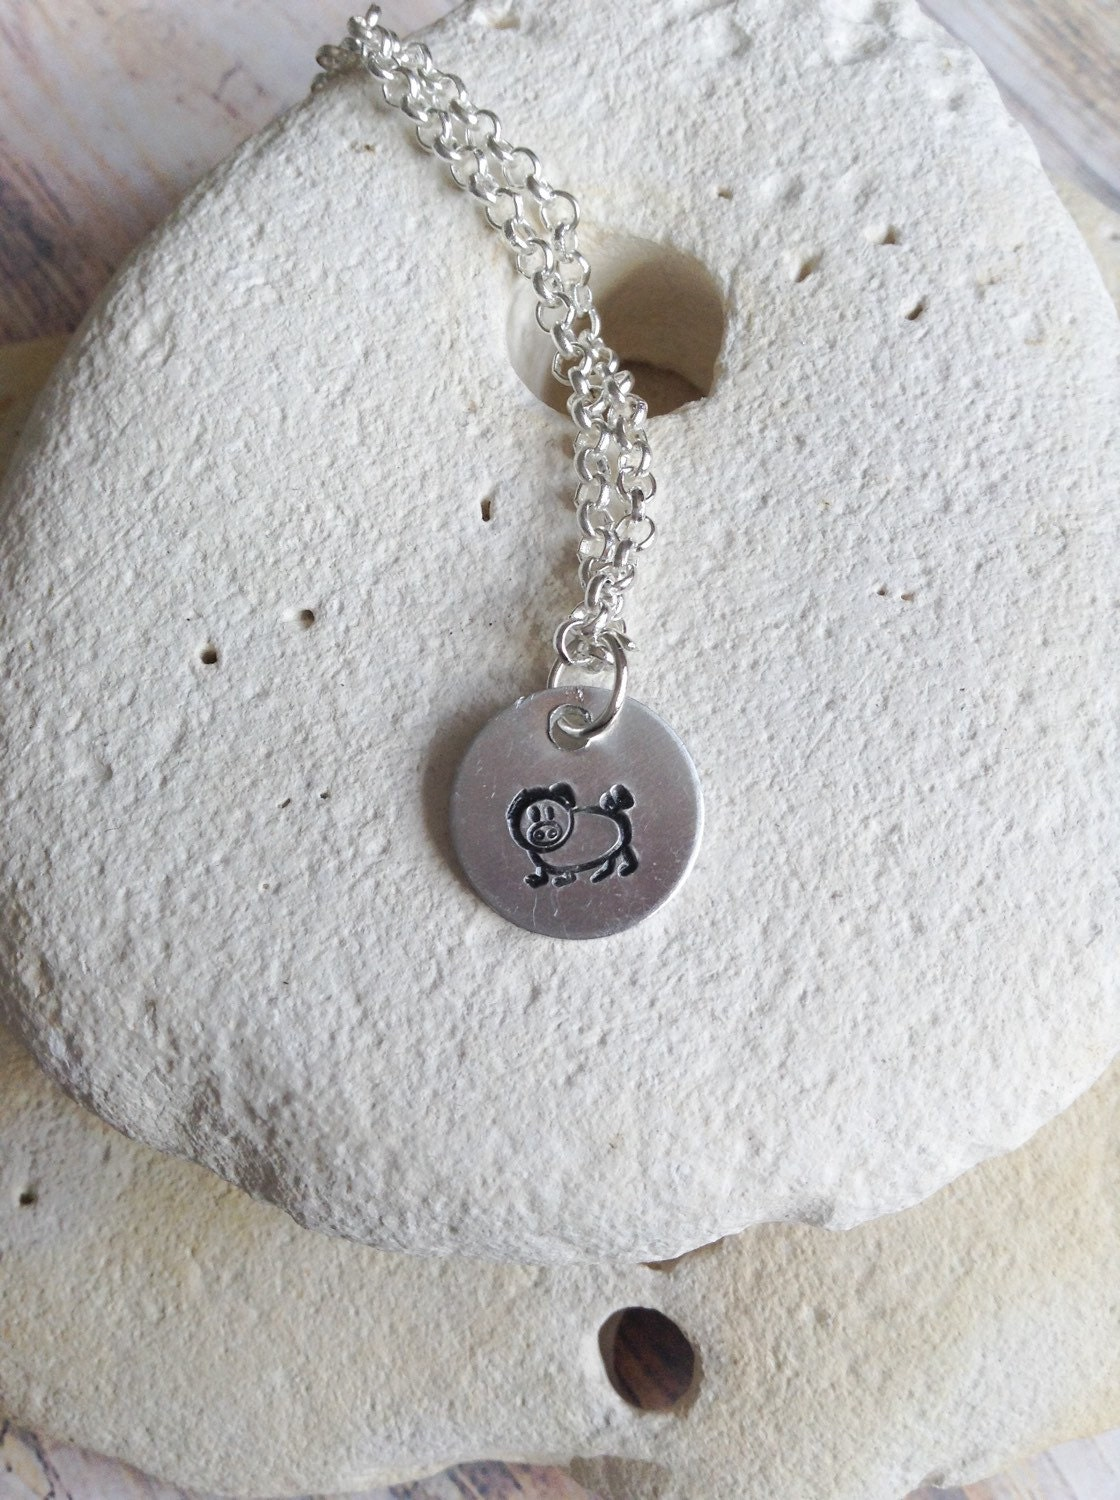 Vegan jewellery - pig necklace - piglet jewelry - animal necklace - animal rights jewellery - animal jewellery - handstamped